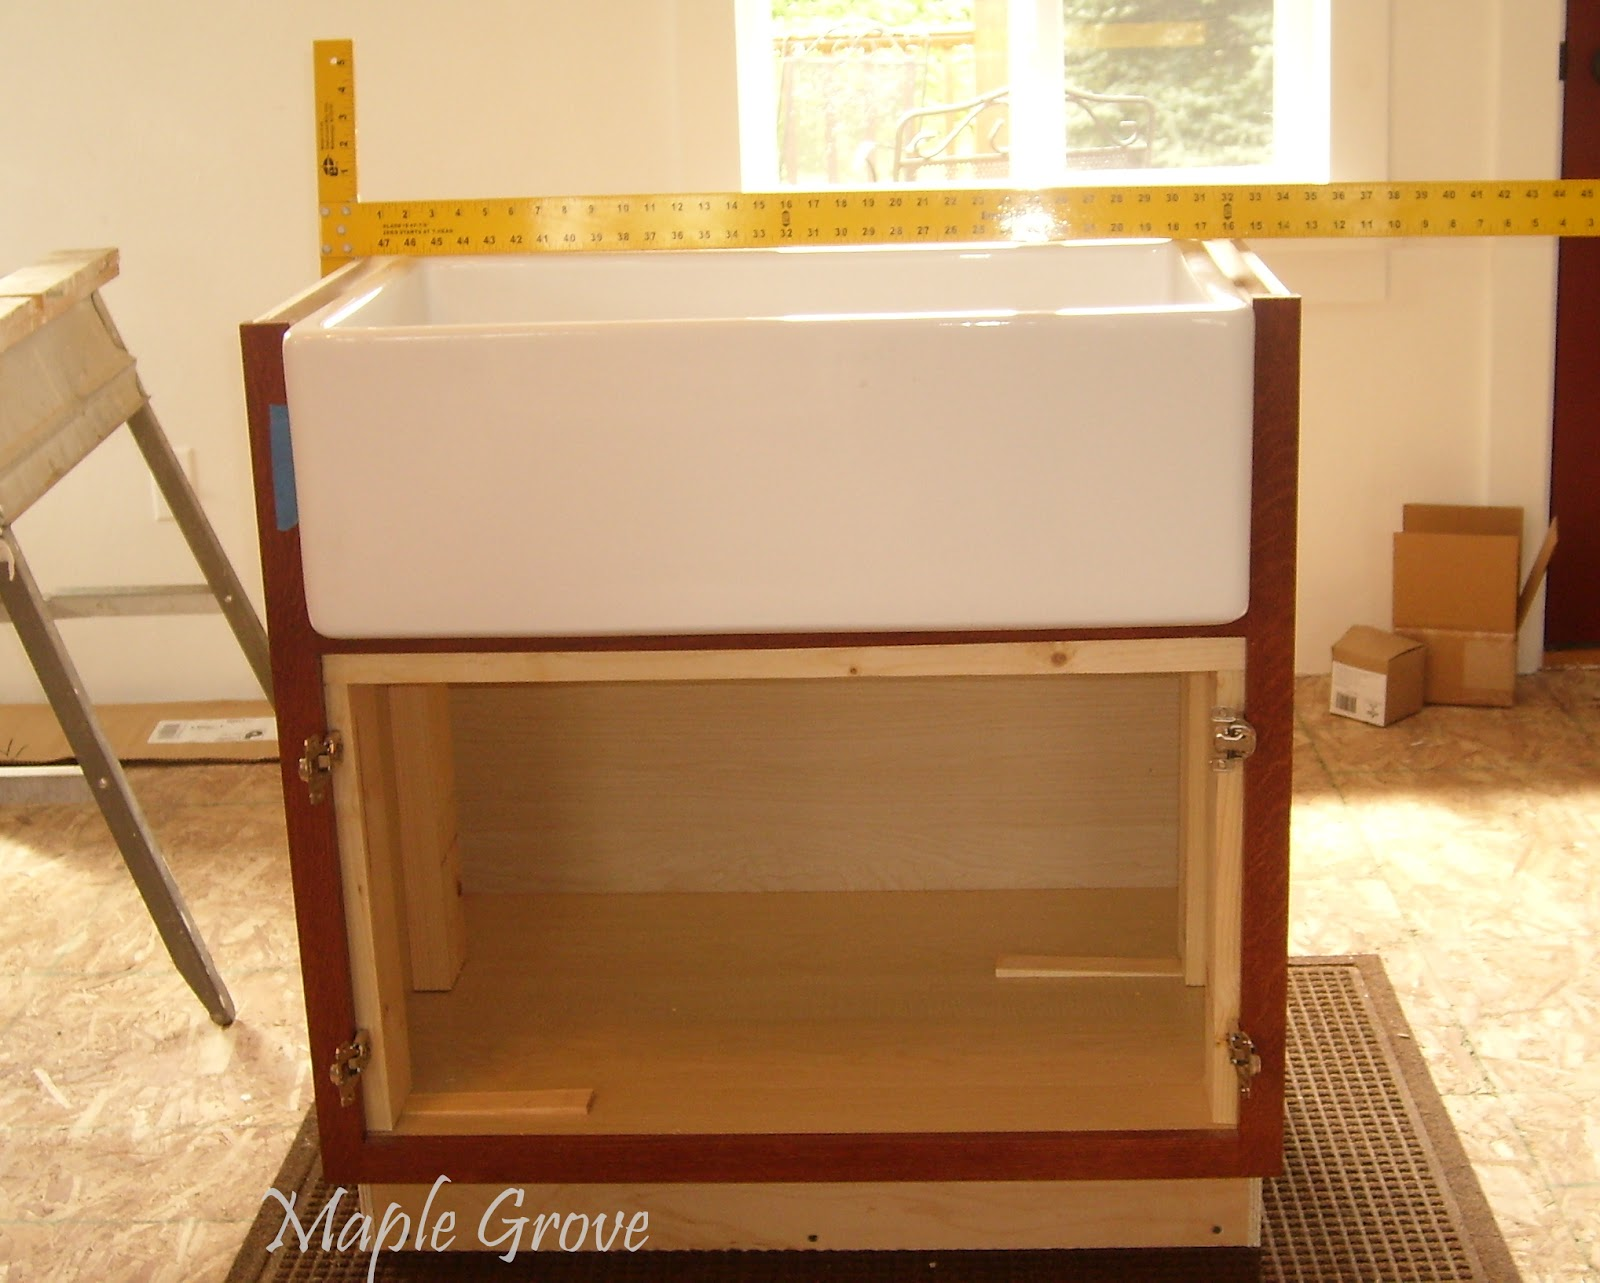 Maple Grove: How to Build a Support Structure for a Farm House Sink